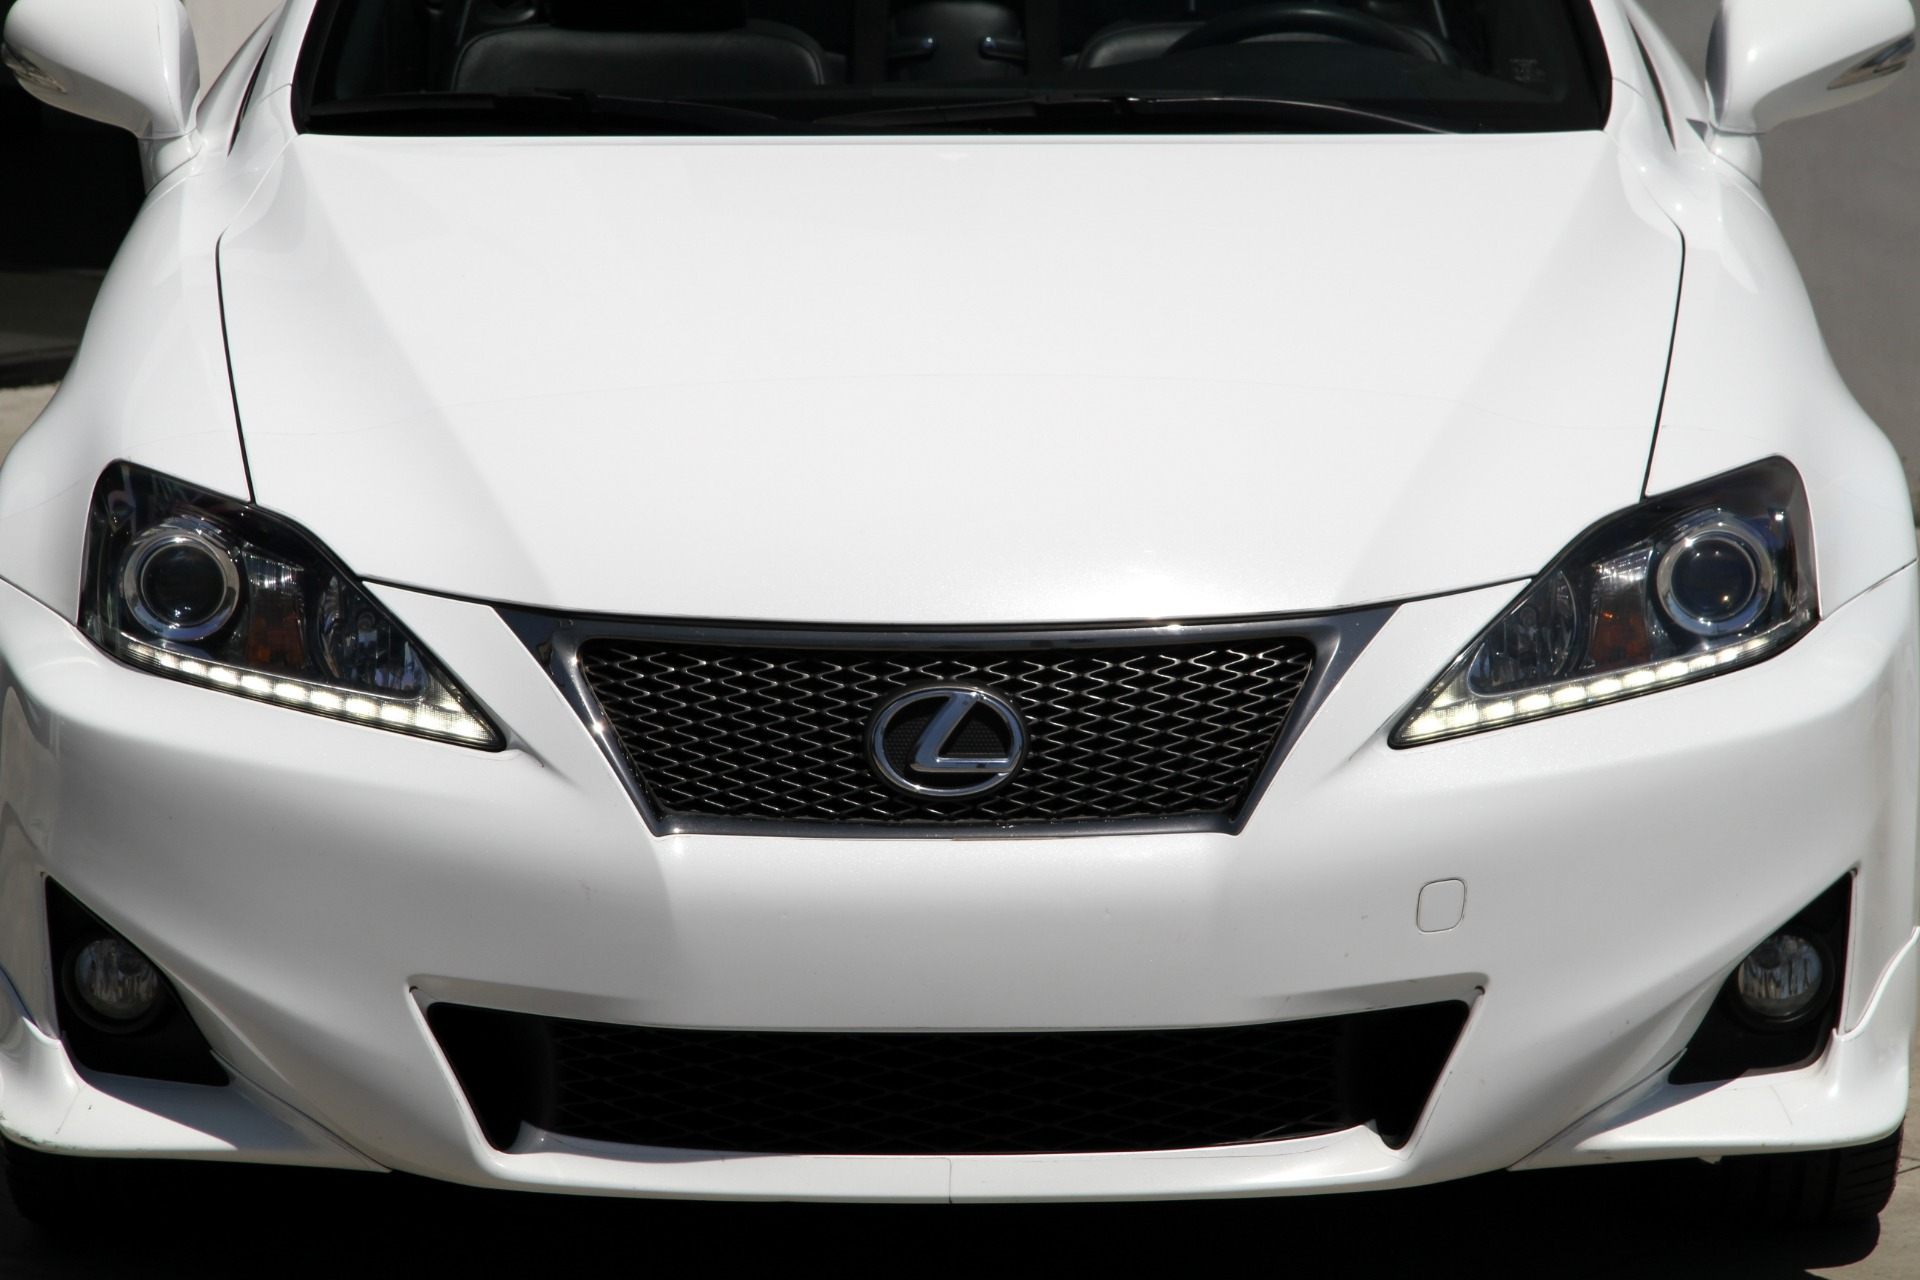 Lexus Dealership Near Me >> 2013 Lexus IS 350C *** F Sport Package *** Stock # 6219A ...